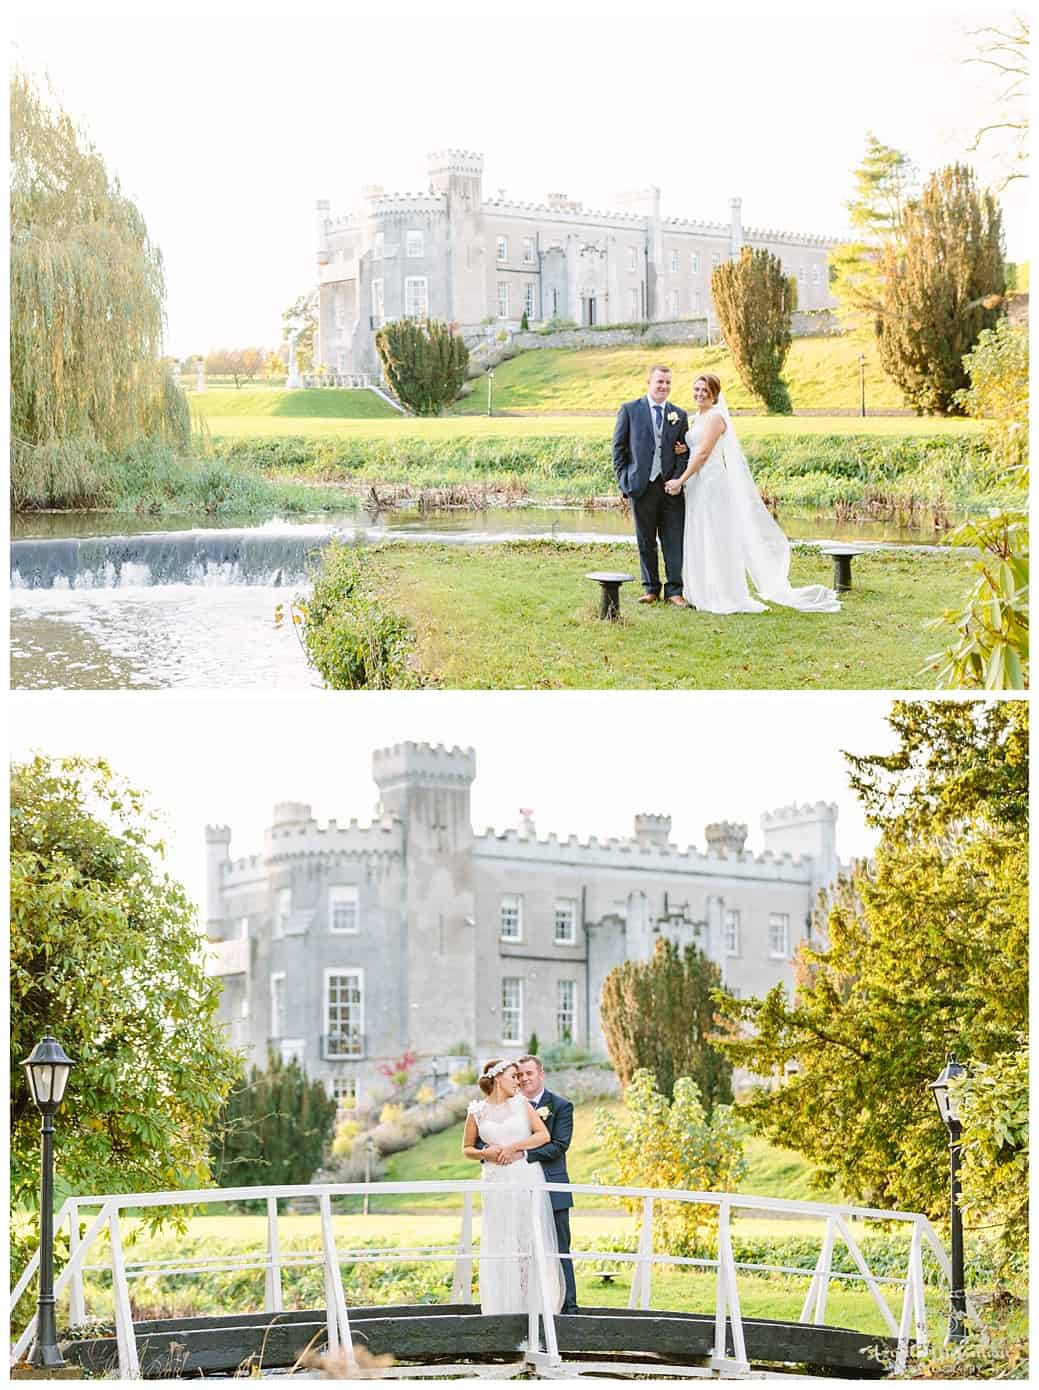 Bellingham Castle Wedding Photography